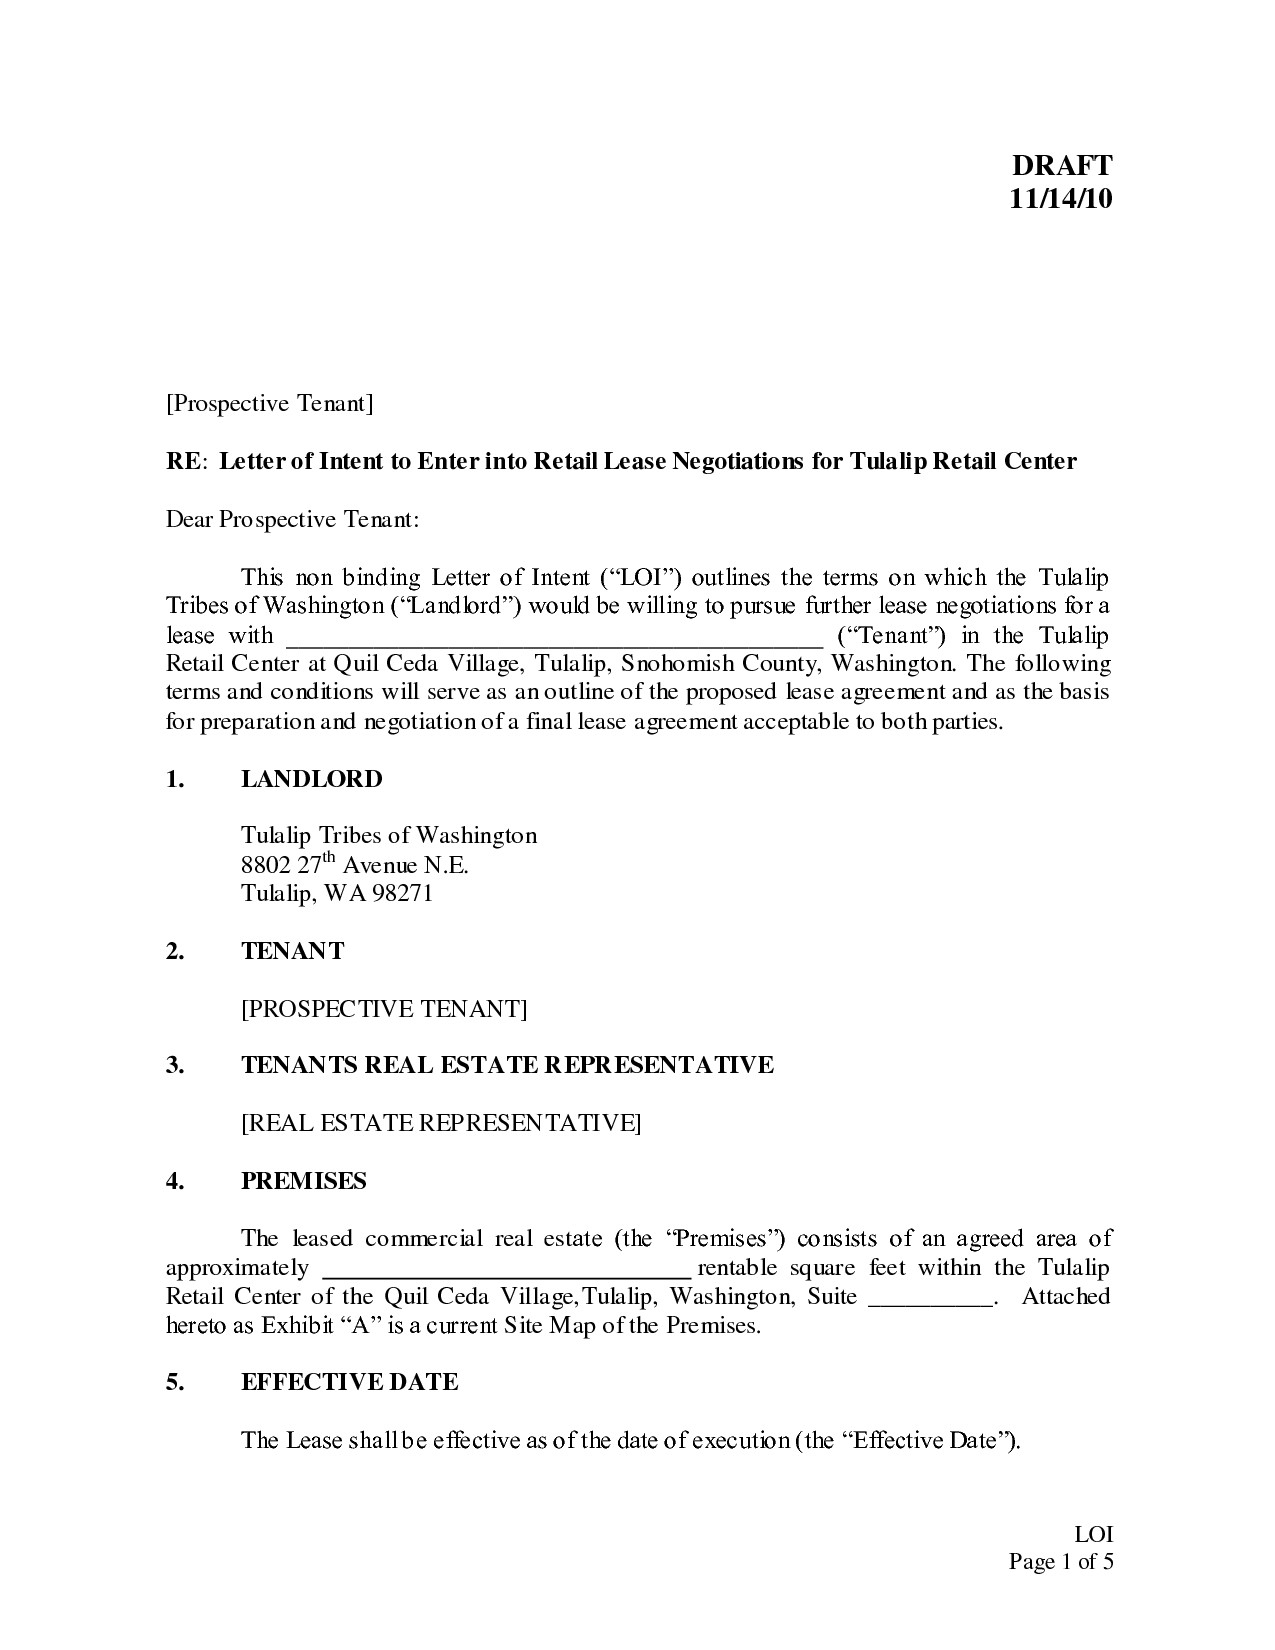 Real Estate Letter Of Intent Template Free - Letter Intent Template Word Best Inspirational Business Letter